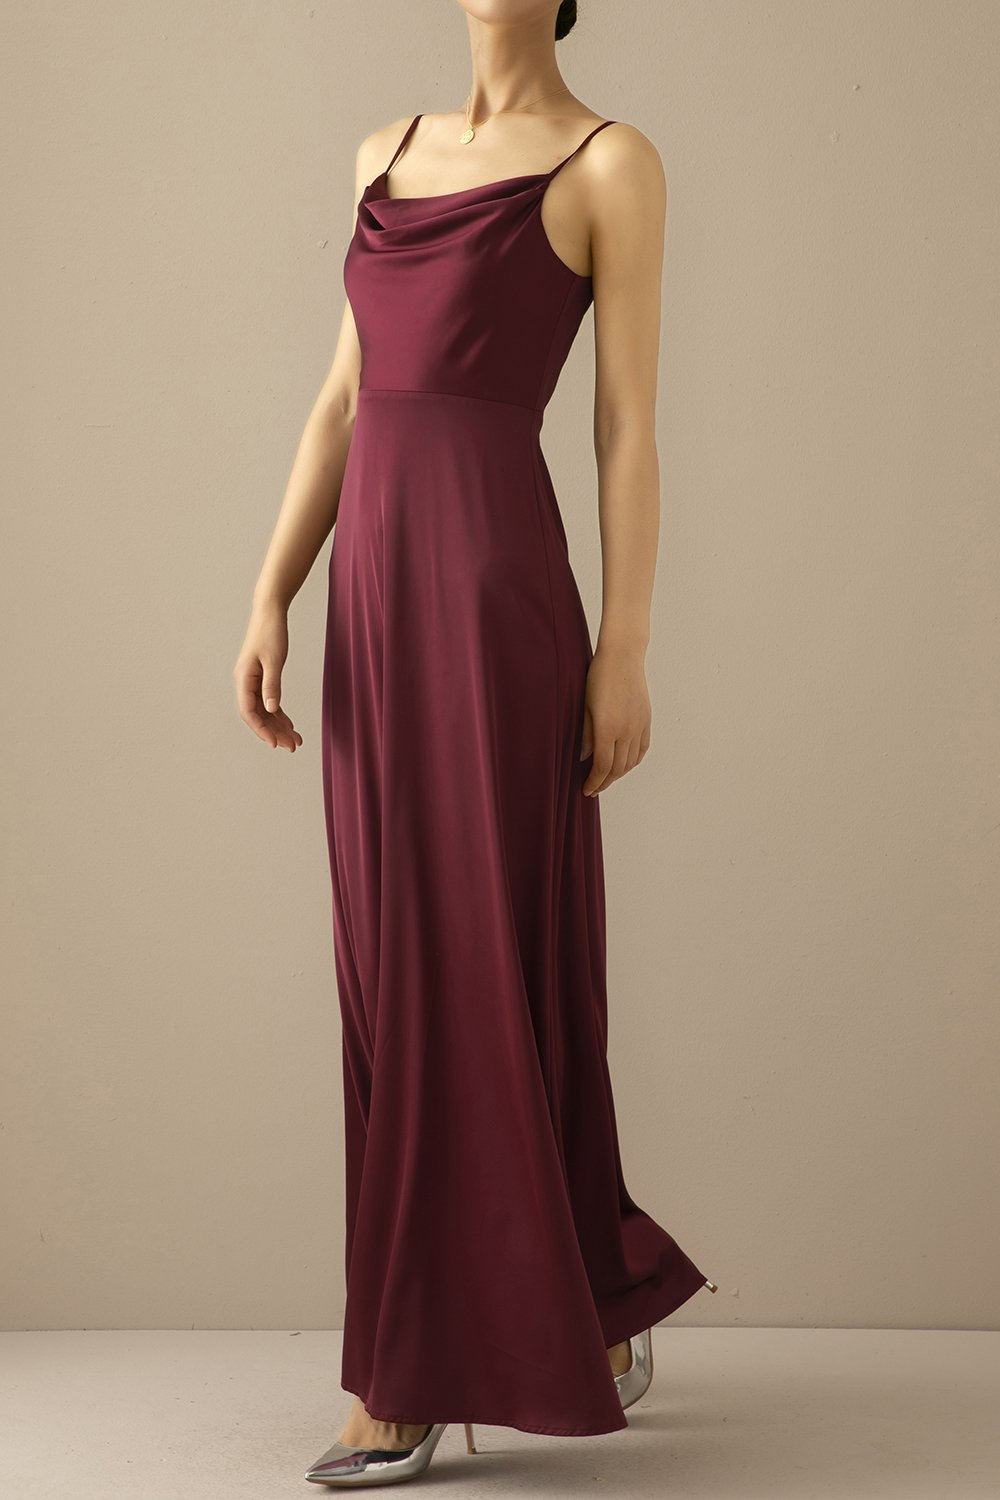 Burgundy Simple Long Bridesmaid Prom Dress